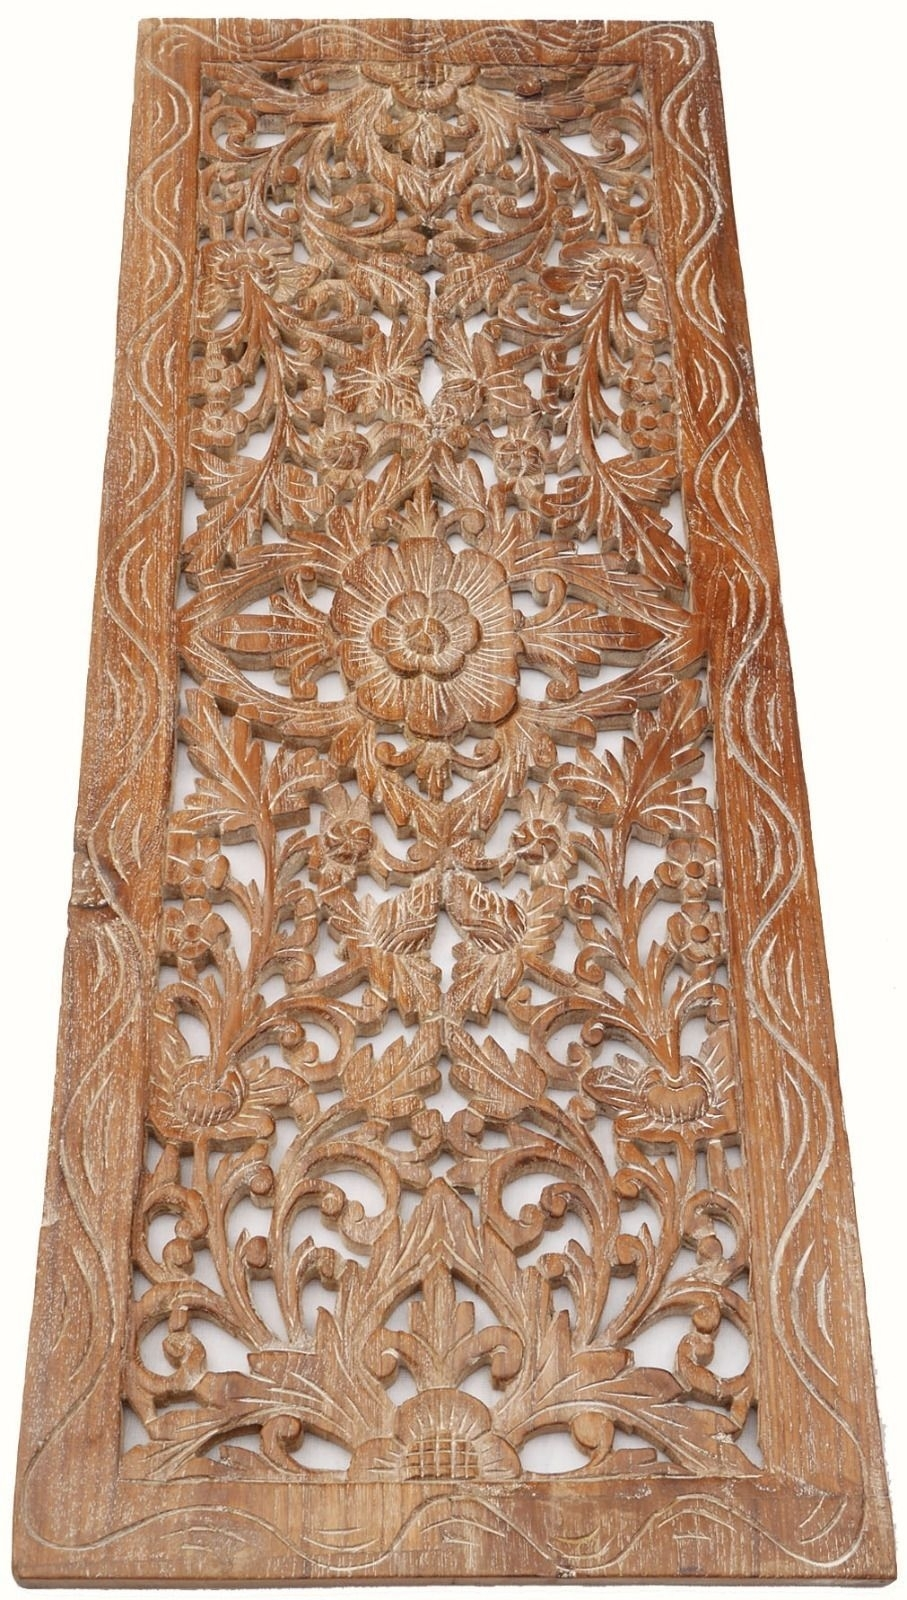 Asian Carved Wood Wall Decor Panel. Floral Wood Wall Art (View 1 of 15)